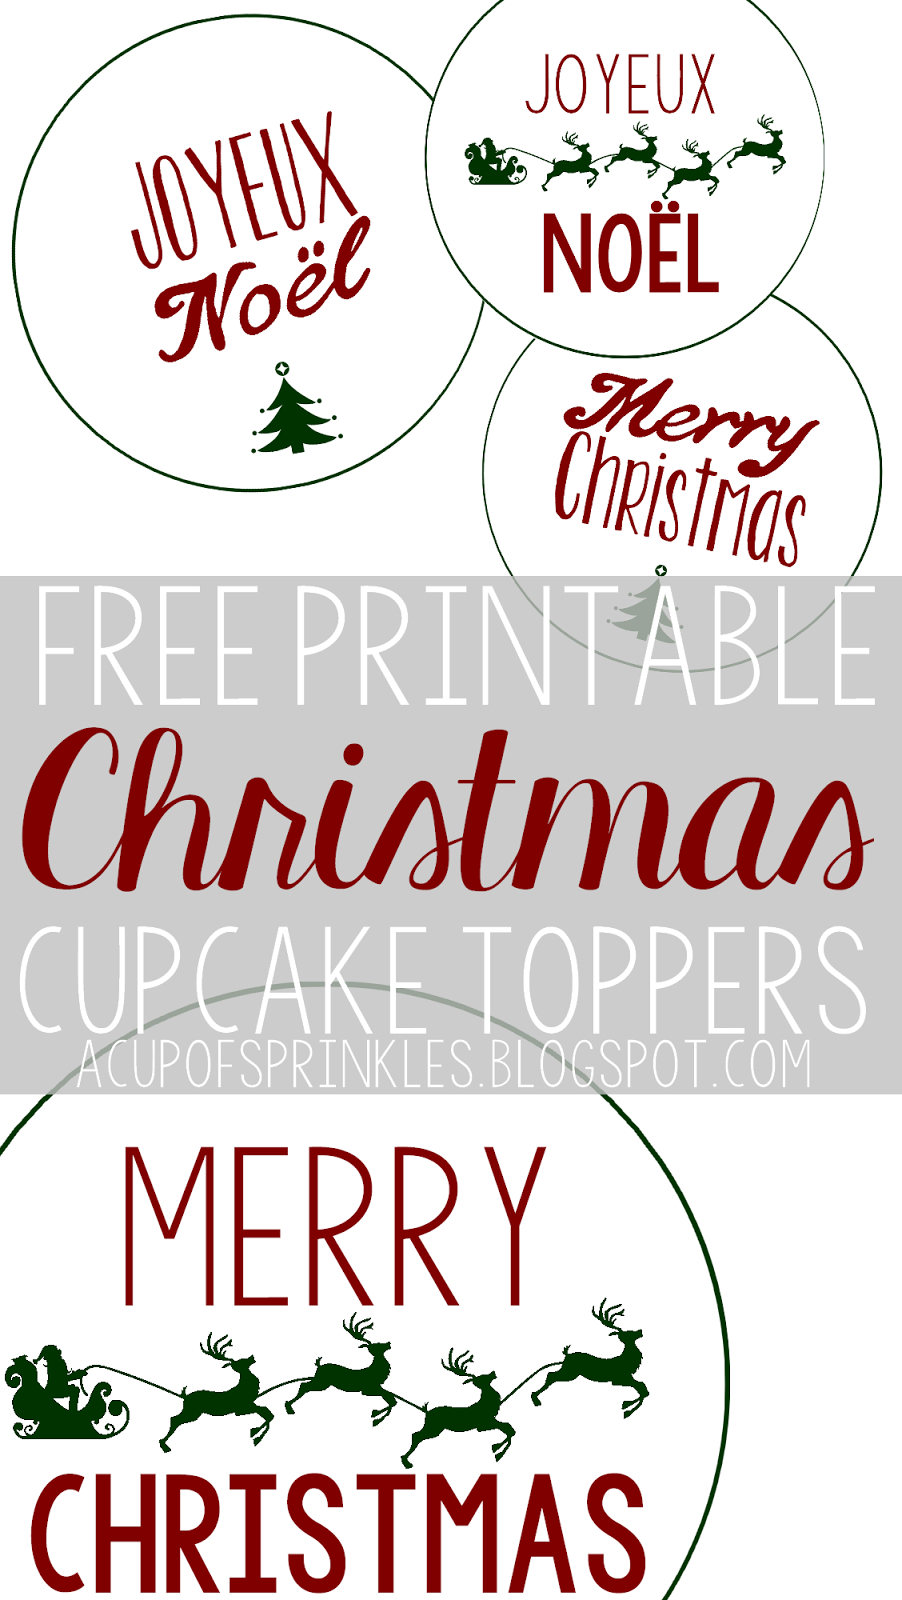 Free Printable : Christmas Cupcake Toppers | A Cup Of Sprinkles - Free Printable Christmas Designs